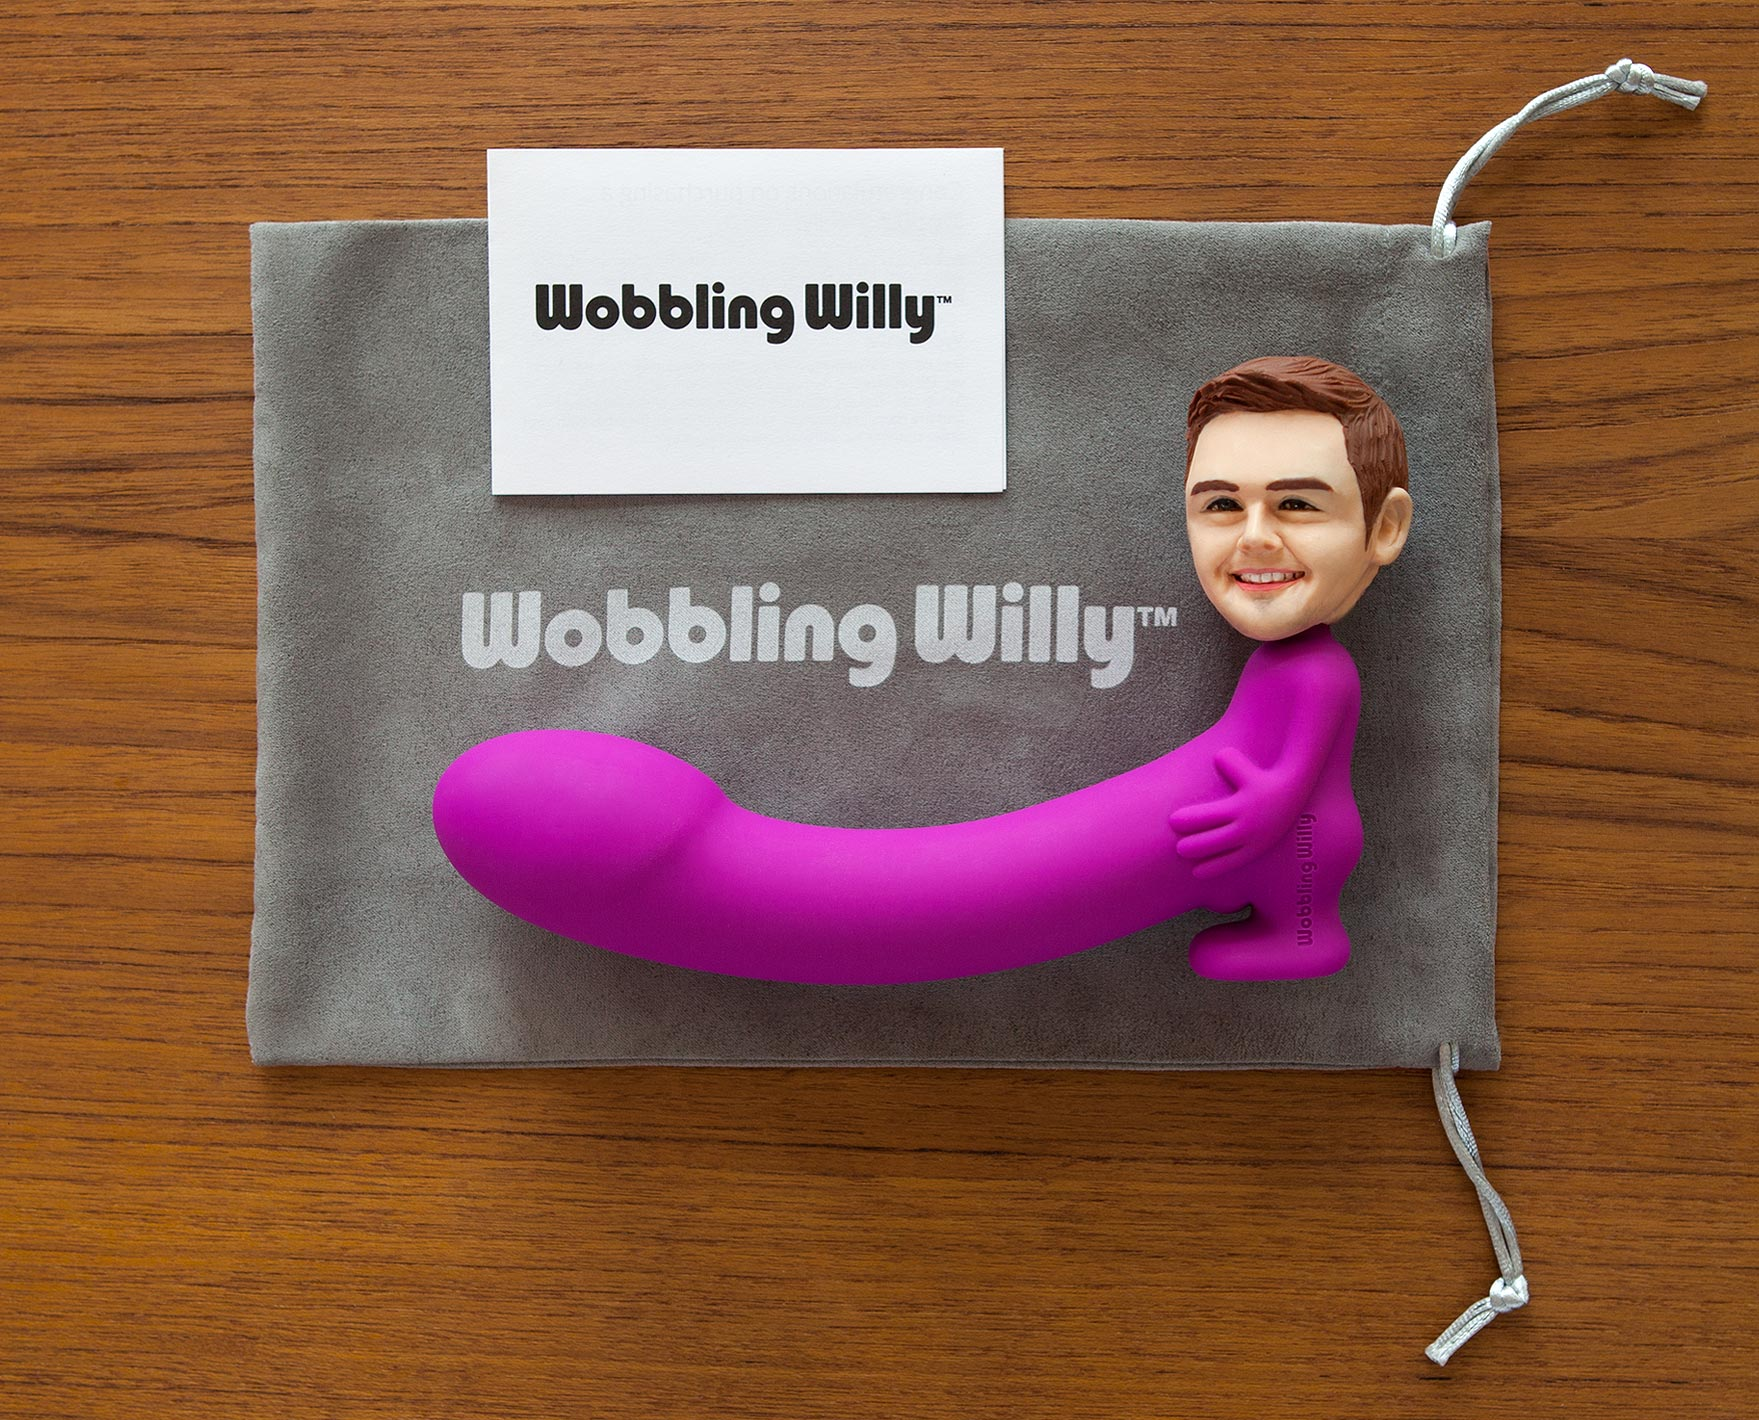 The Wobbling Willy – A great Christmas idea